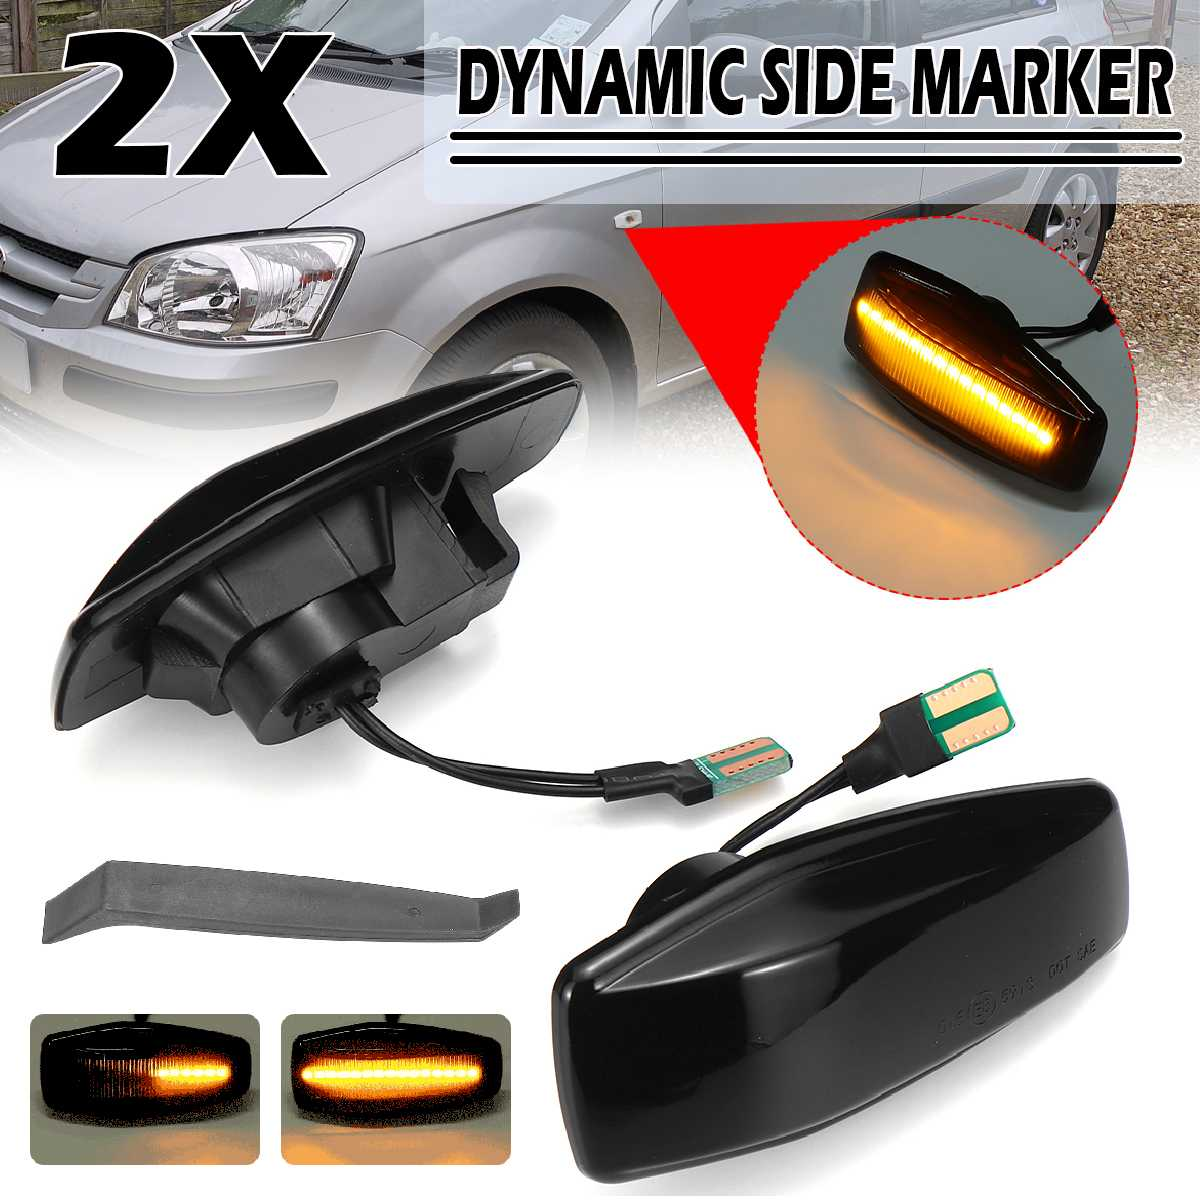 2pcs Flowing Turn Signal Led Side Marker Light 12V Panel Lamp Side Lamp Dynamic Indicator Blinker For Hyundai I10 TRAJET GETZ